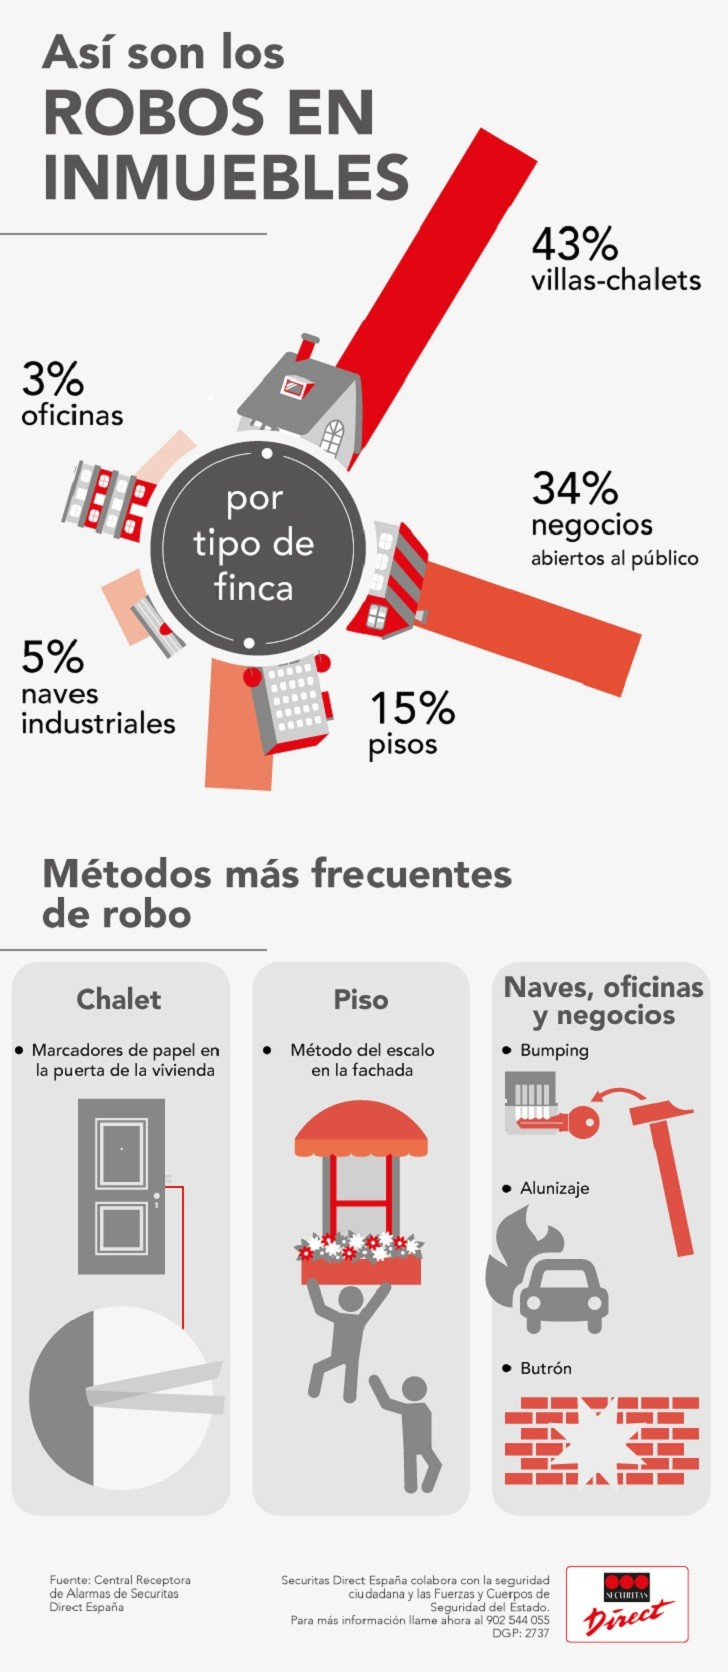 Los robos por tipolog a de inmueble - Oficinas securitas direct ...